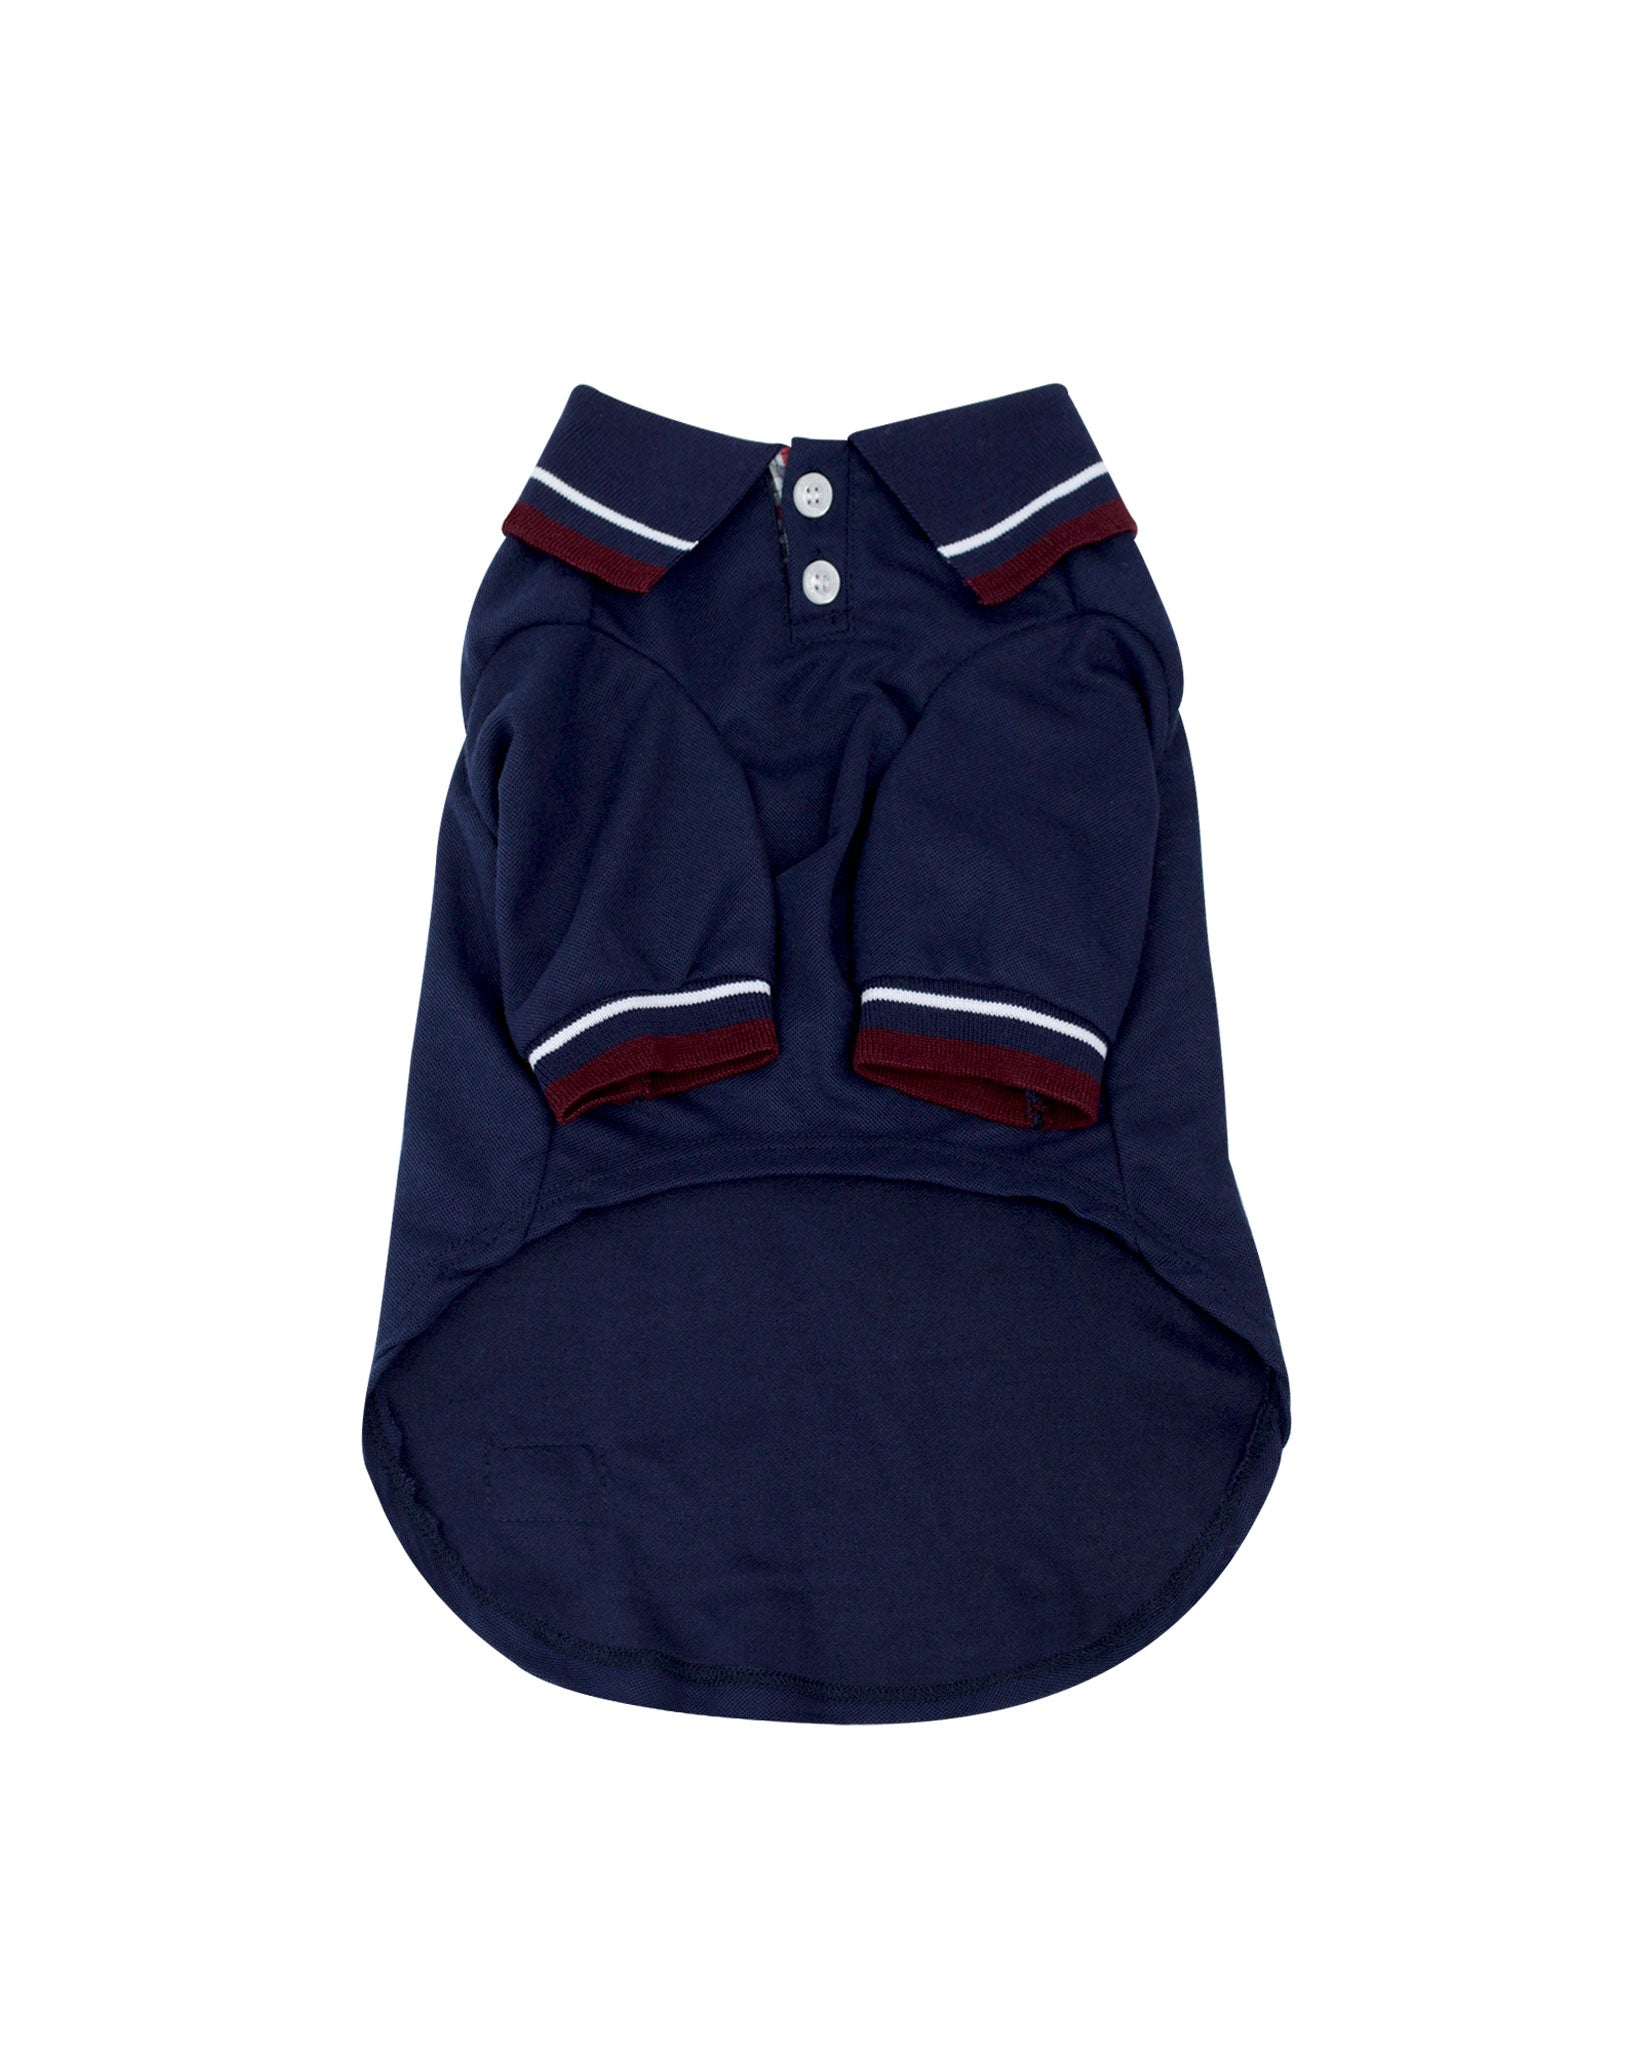 Dog Polo Shirt - Navy